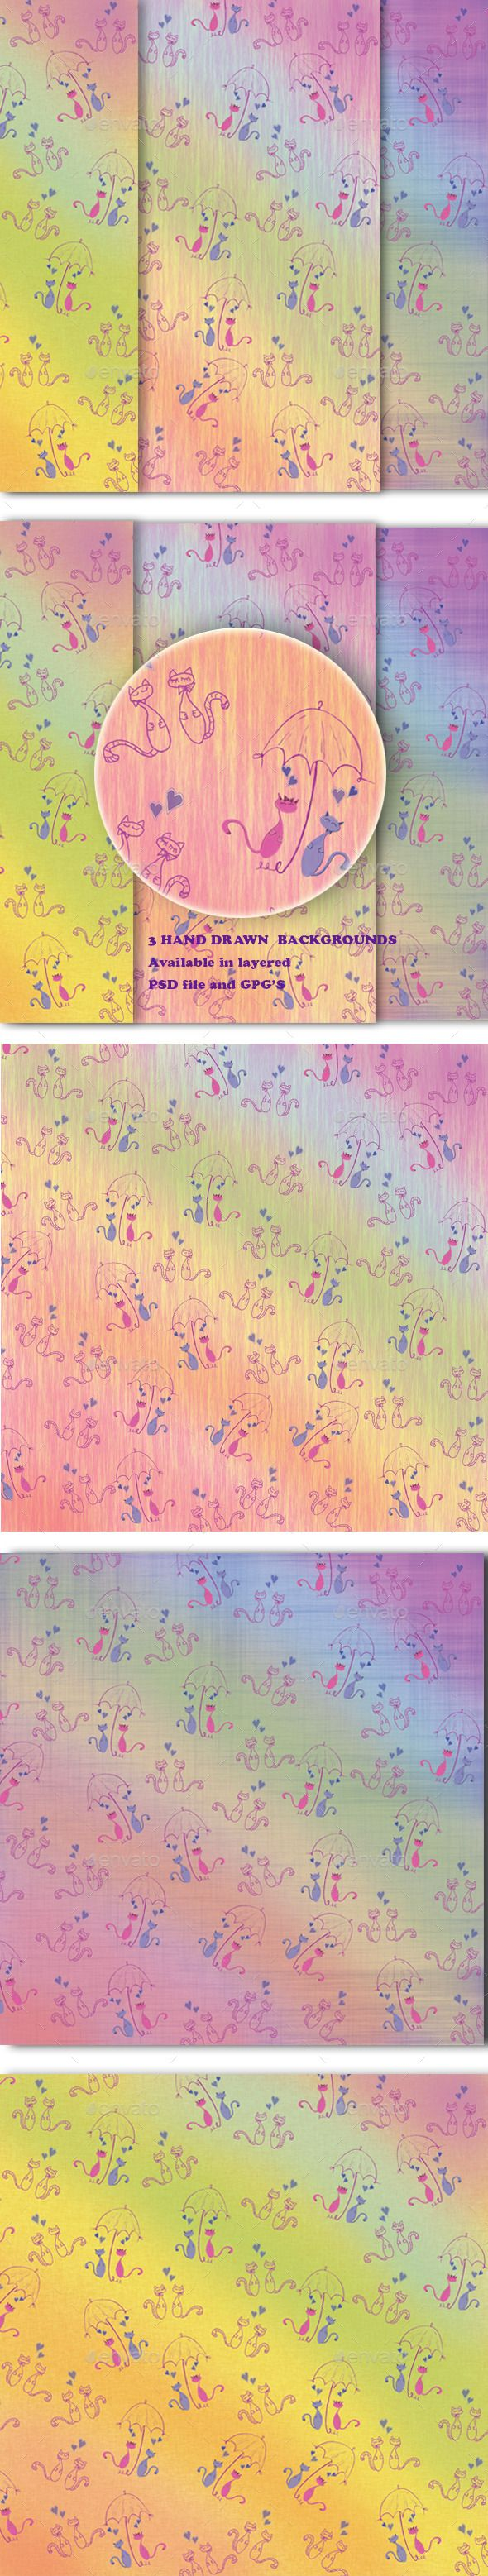 Romantic Background by Kaimen2011 Hand Drawen Backgrounds Set of 3 Seamless Pattern.(Backgrounds include elements: group of Cats, Umblella, Hearts,Background ) >> S